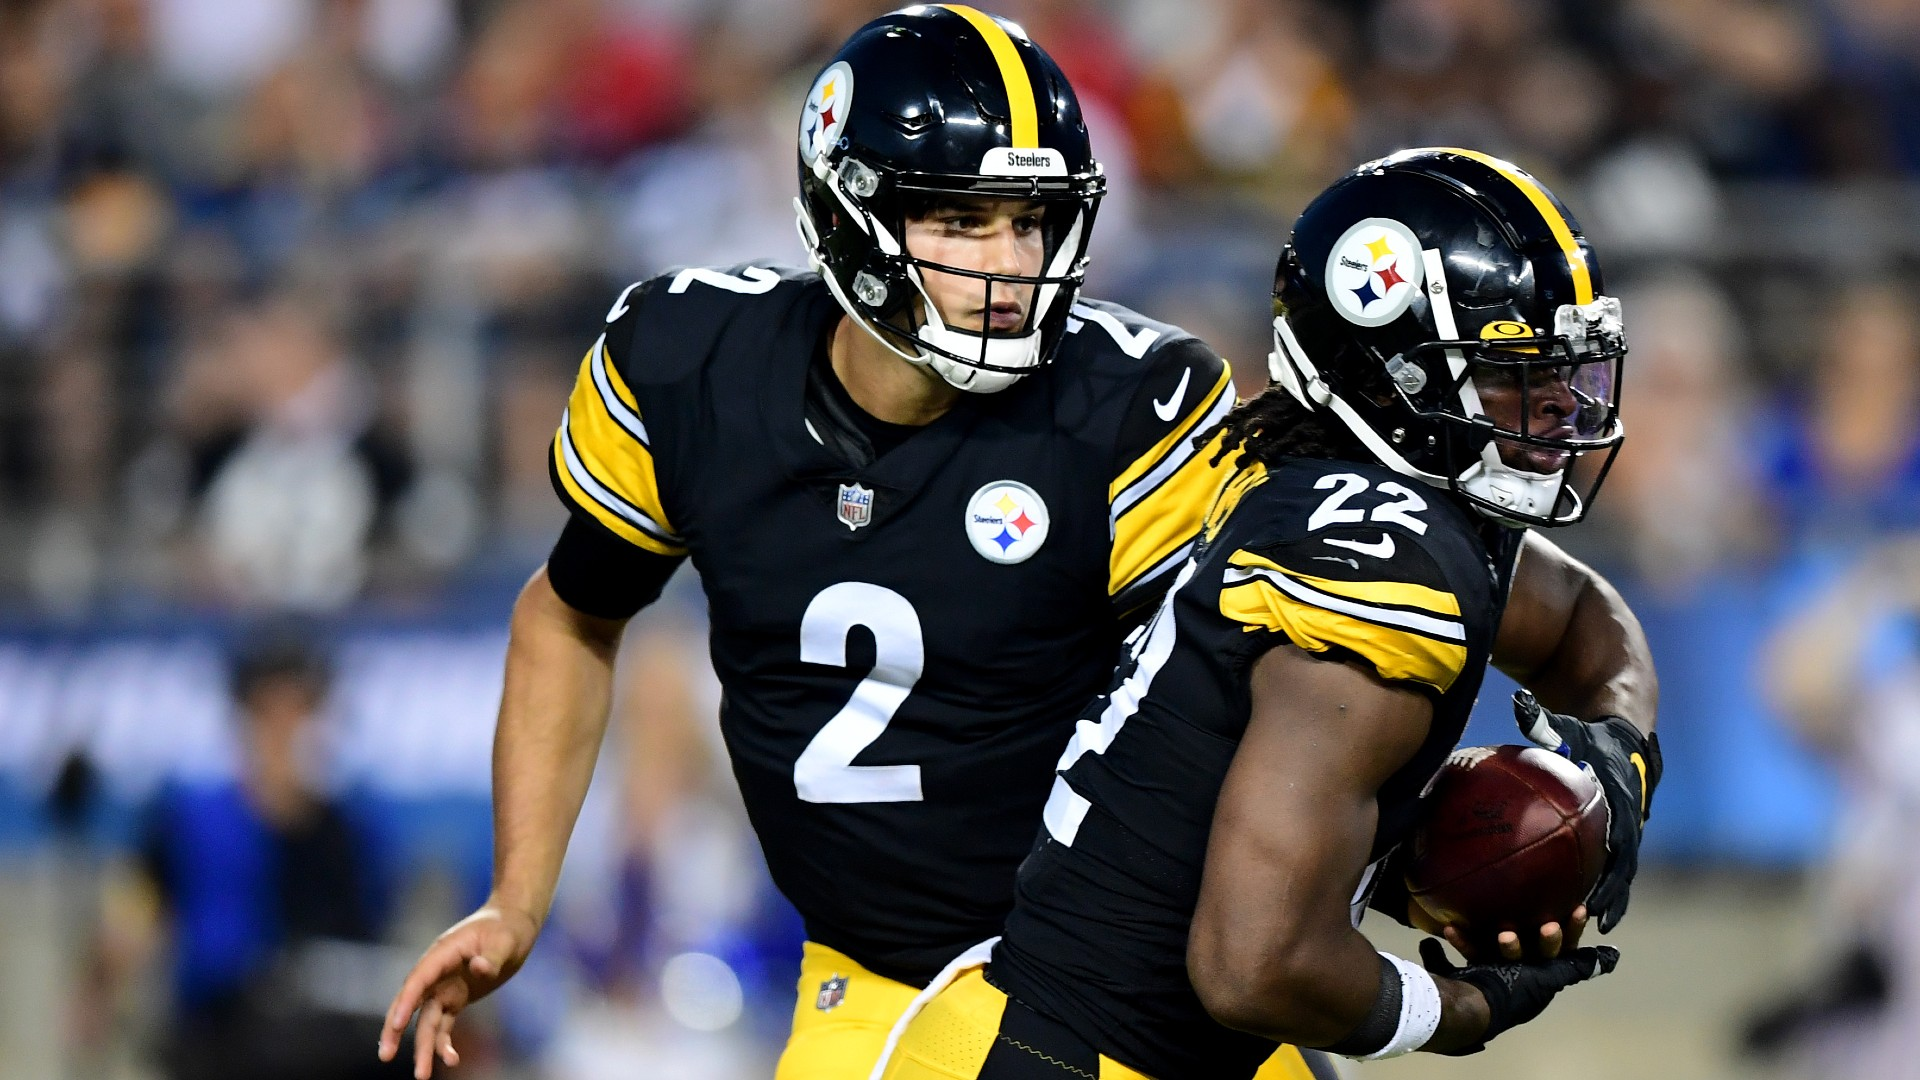 The Steelers make no secret of the huge role of rookie Najee Harris in 2021 in the busy preseason debut